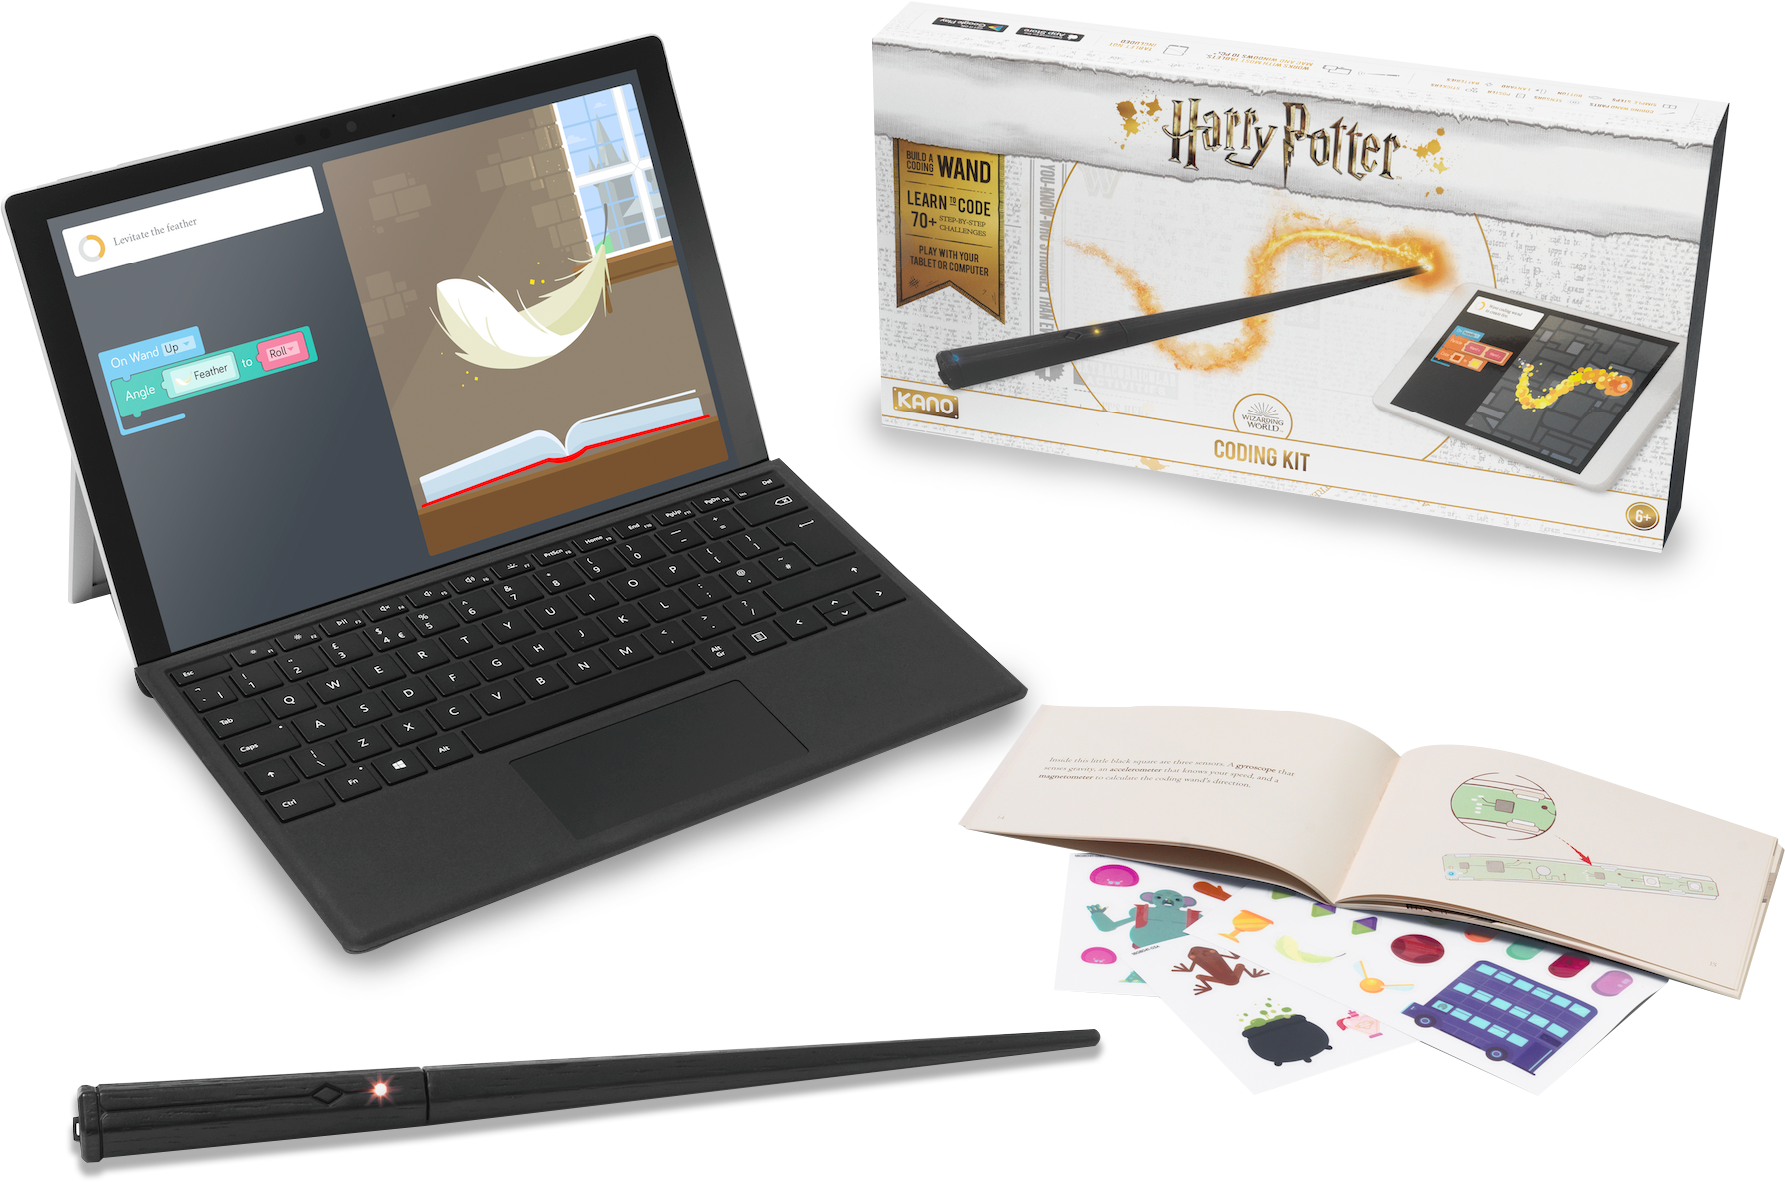 Kano Harry Potter Wand Coding Kit